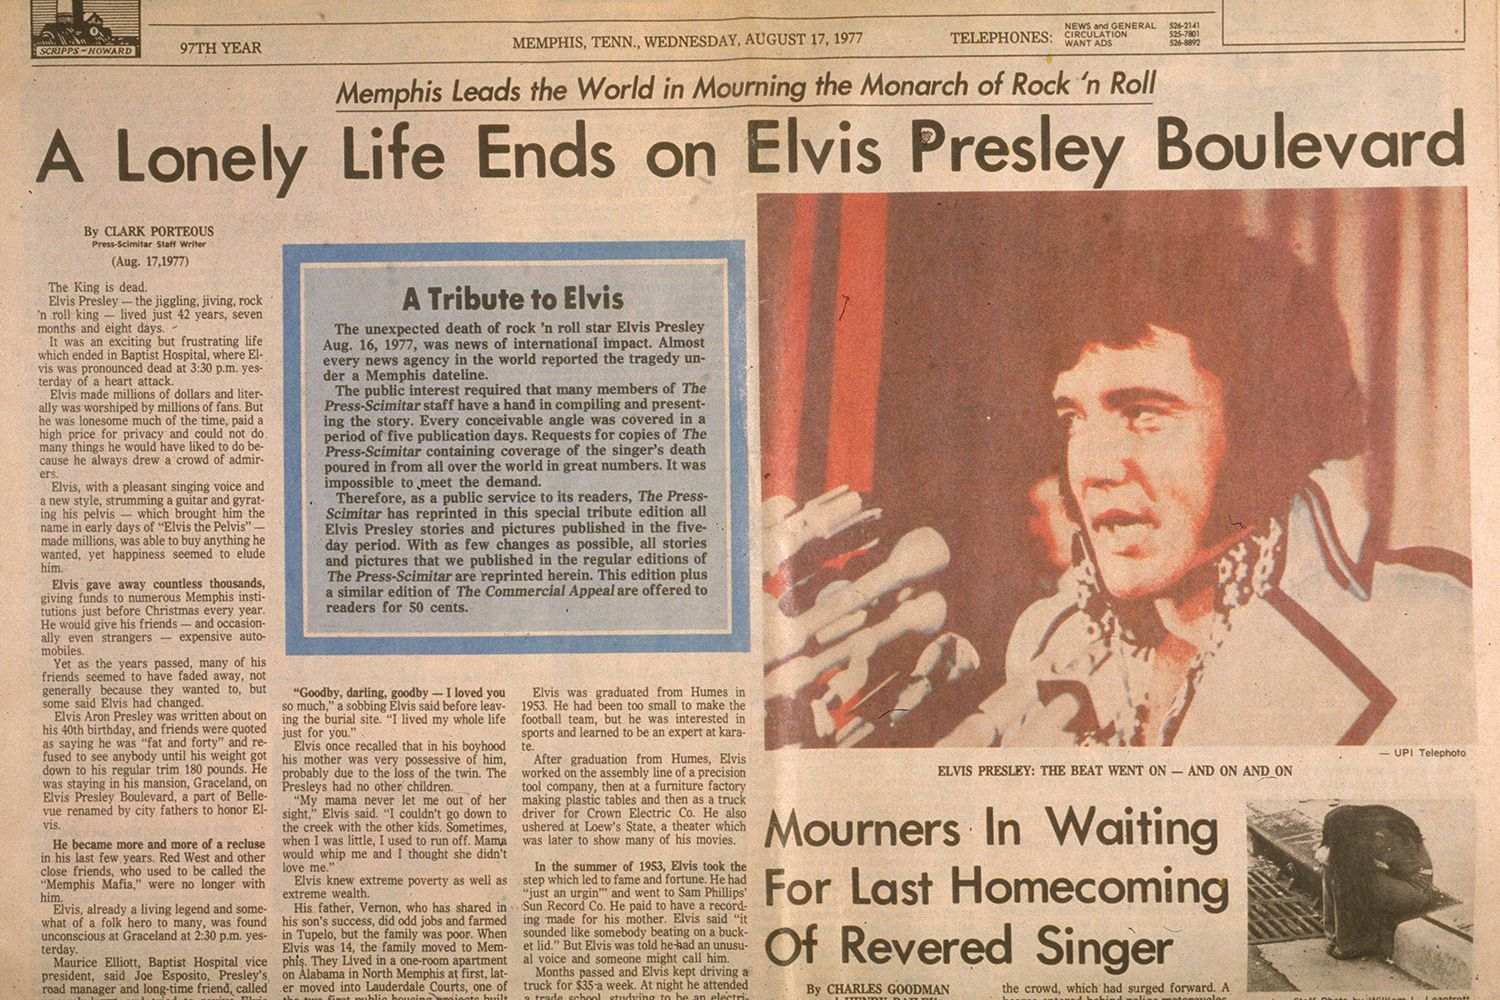 Controversy Around Elvis Presley's Death